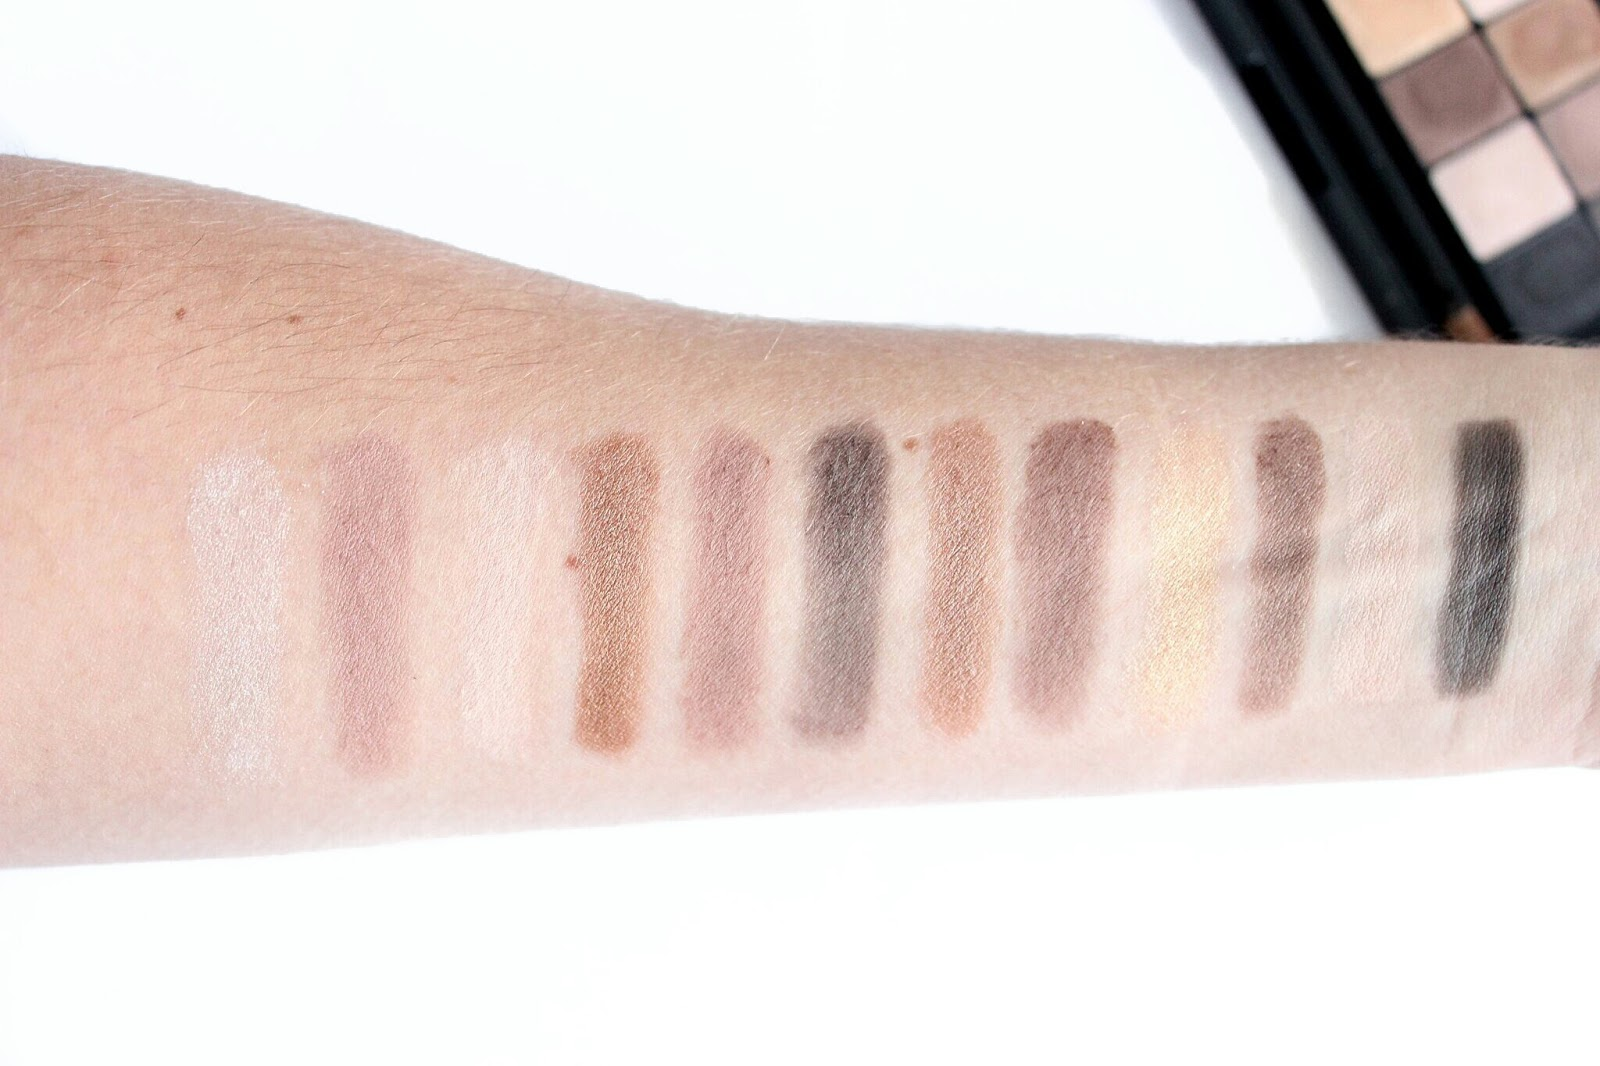 Swatches of Maybelline The Nudes Eyeshadow Palette